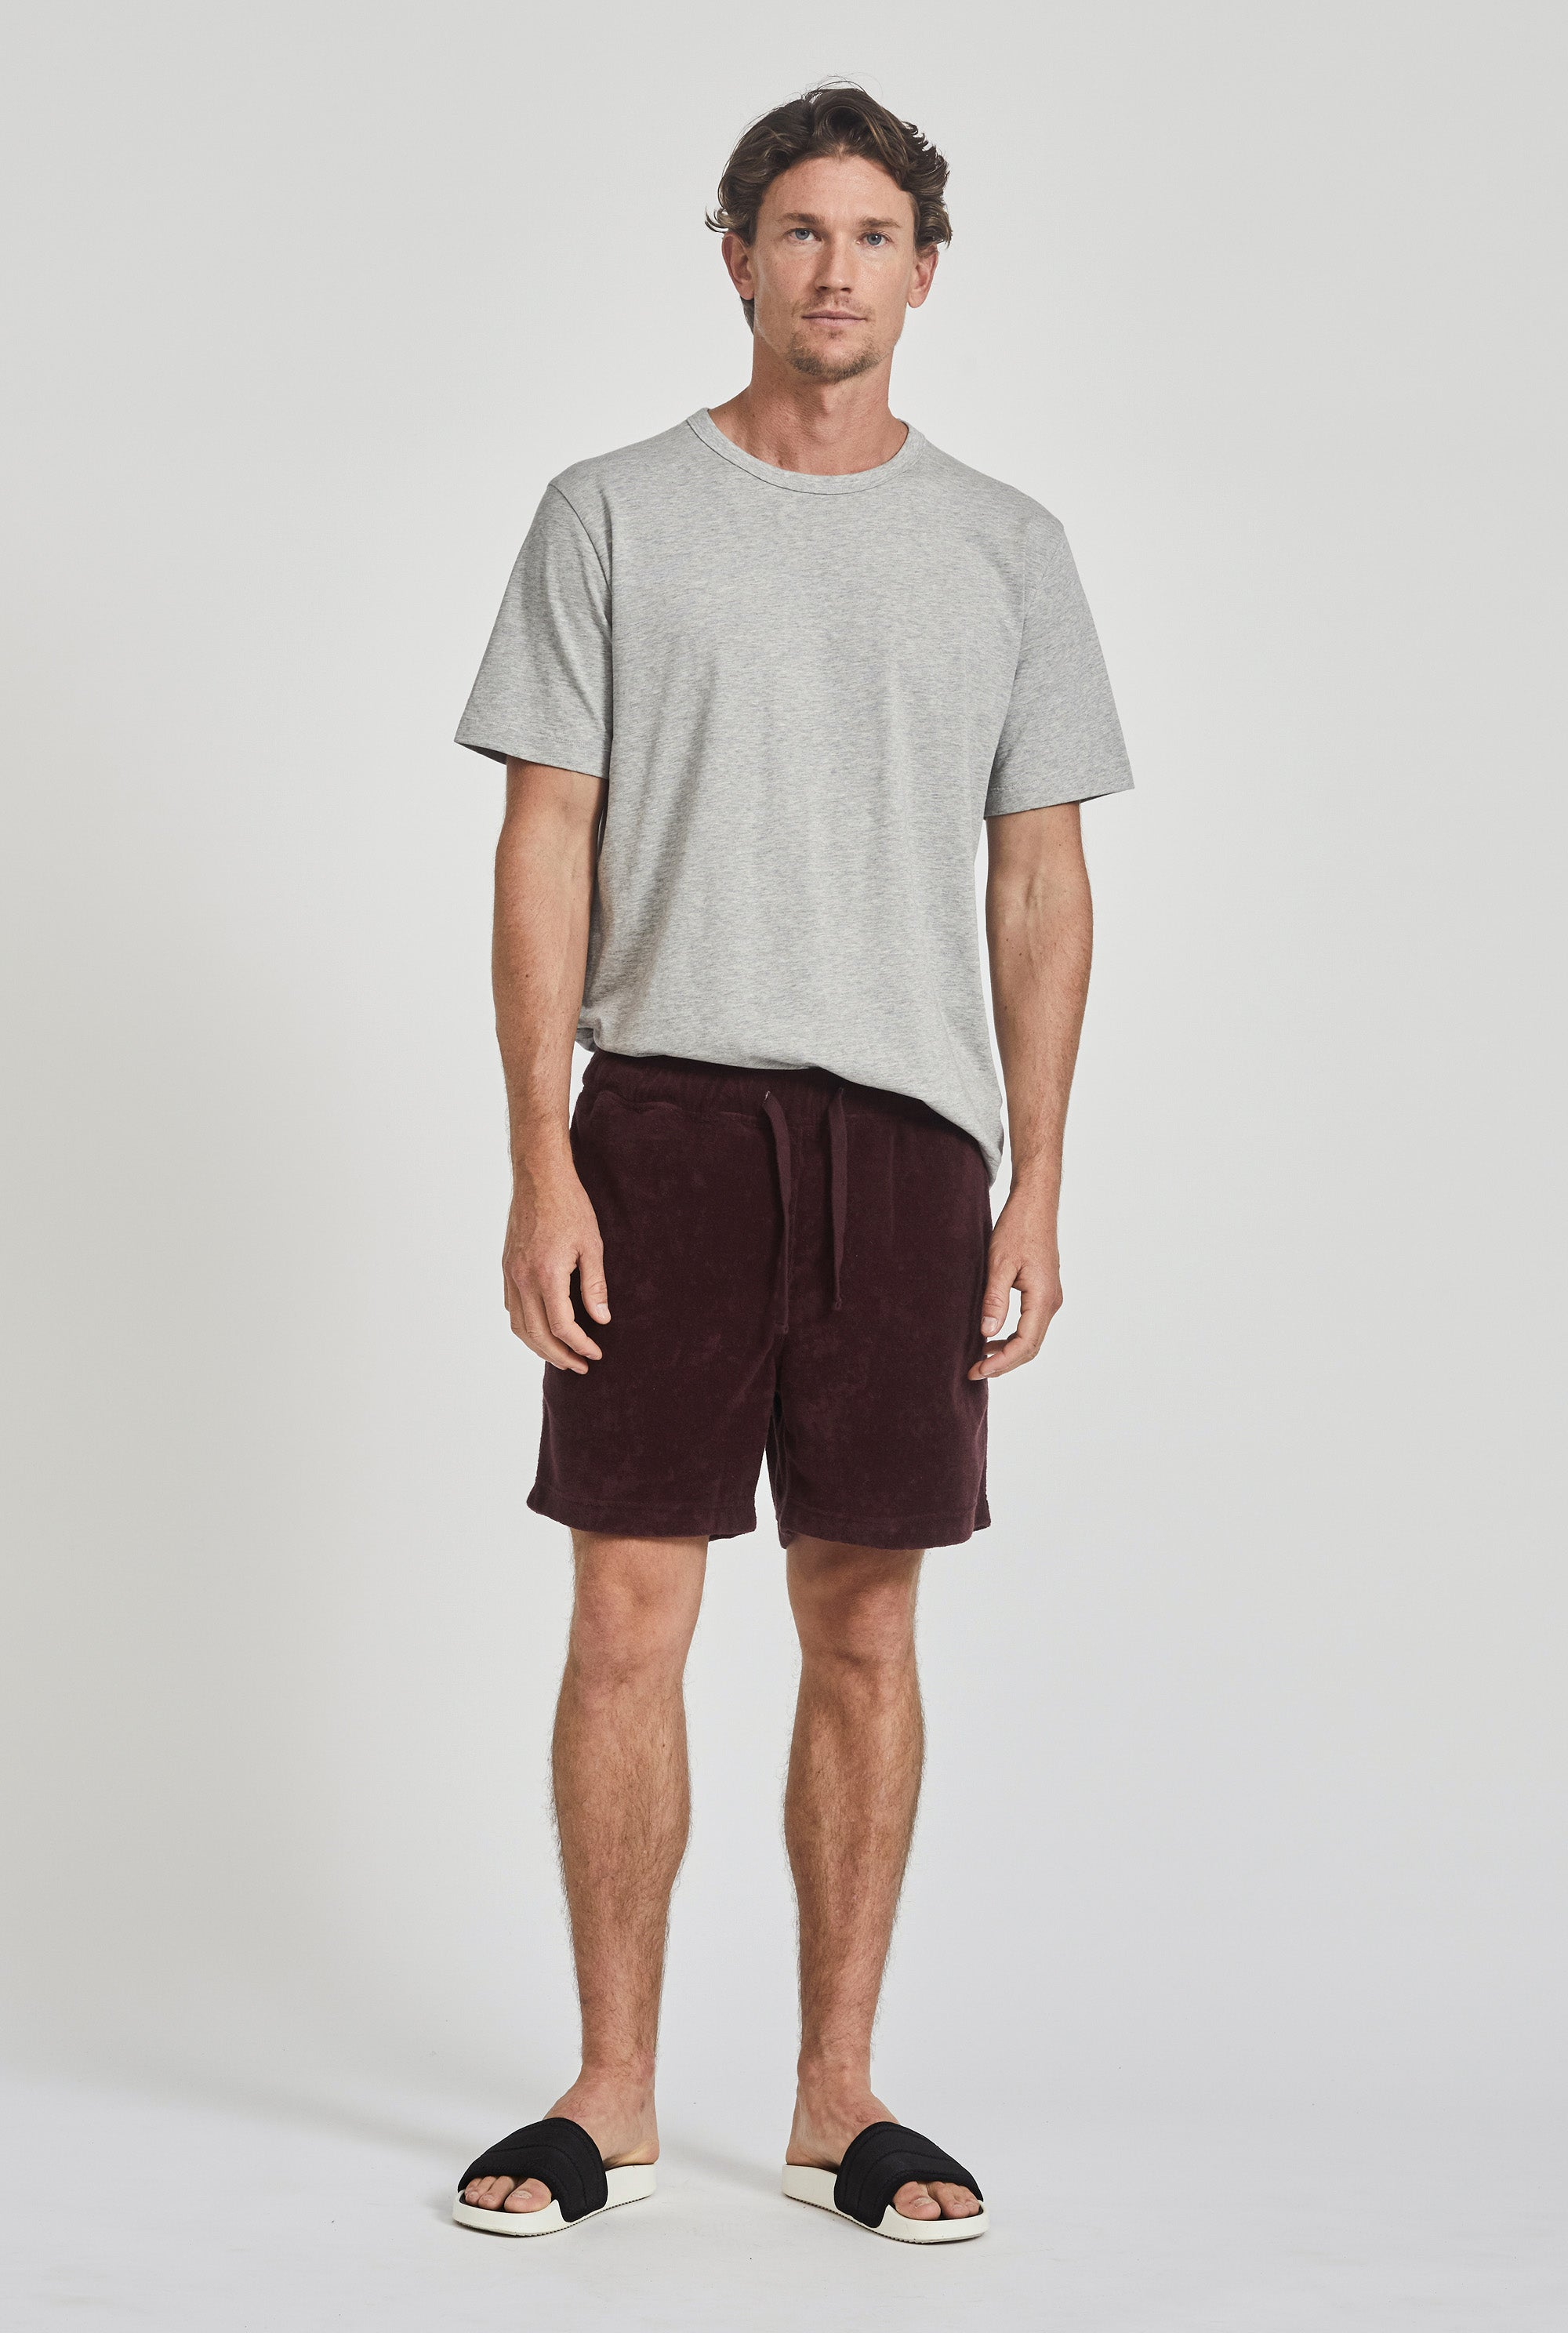 Terry Towel Short - Burgundy